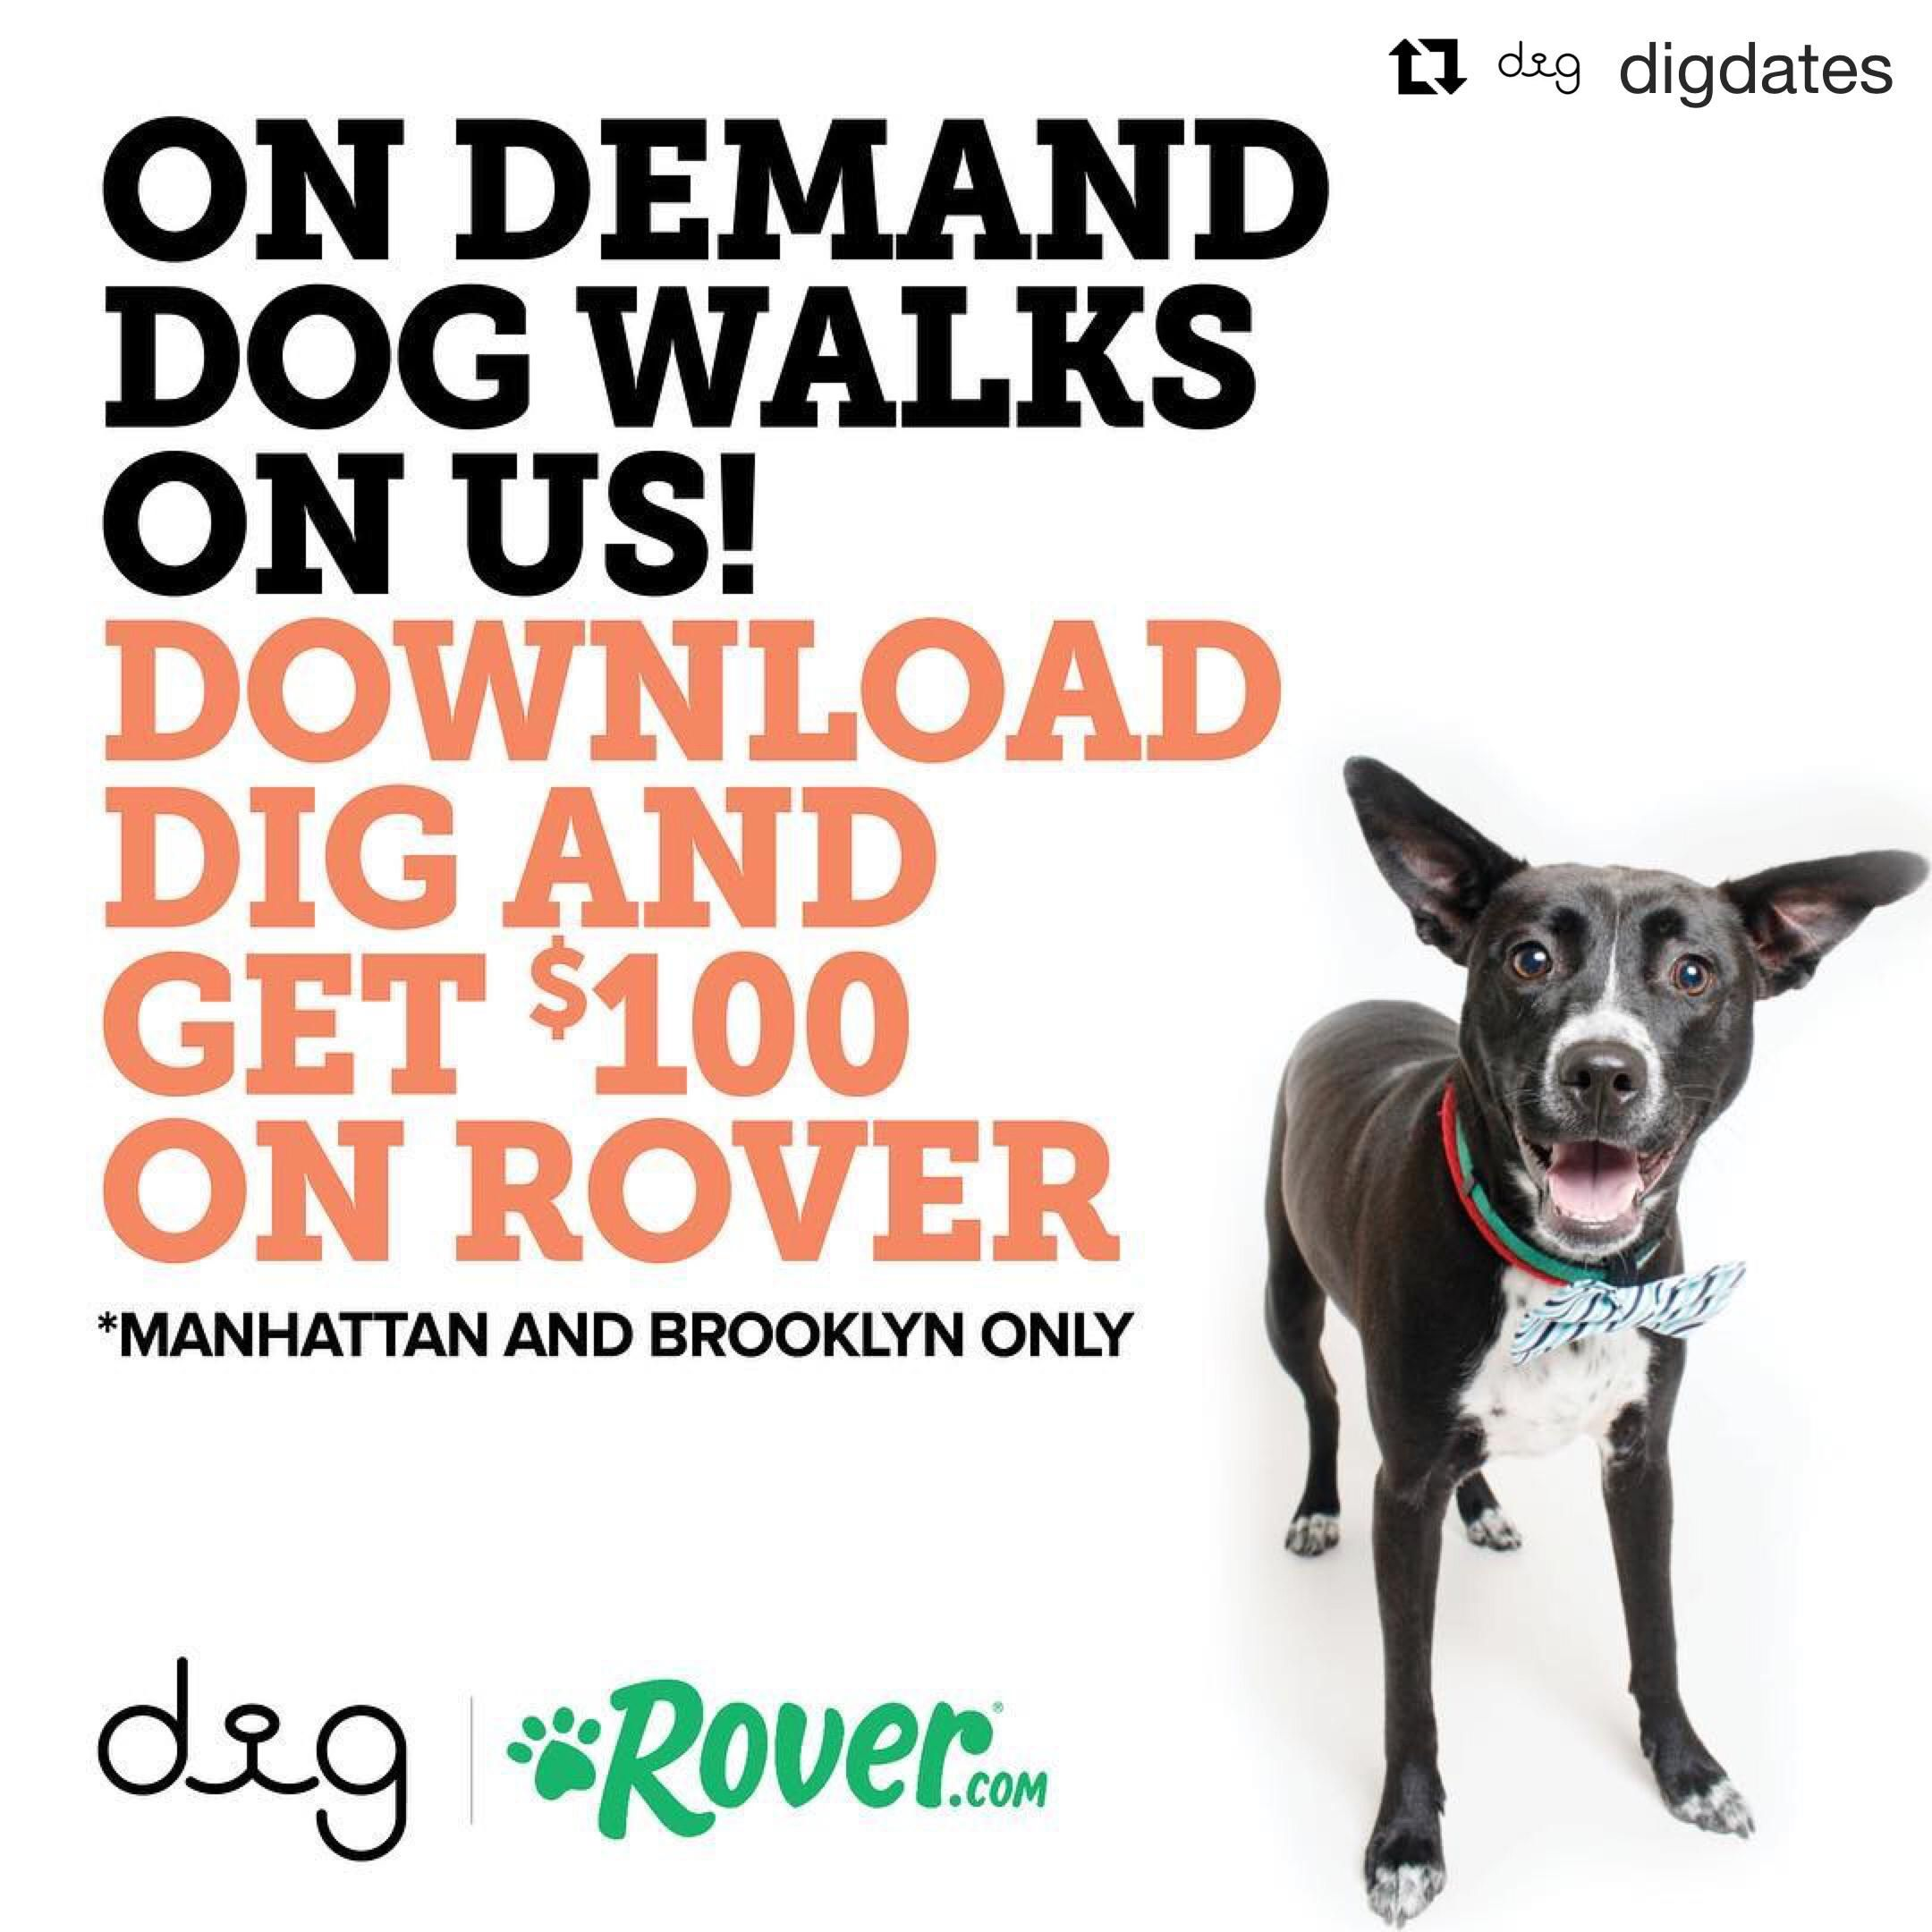 Dig The Dog Person S Dating App And Rover Have Teamed Up To Give